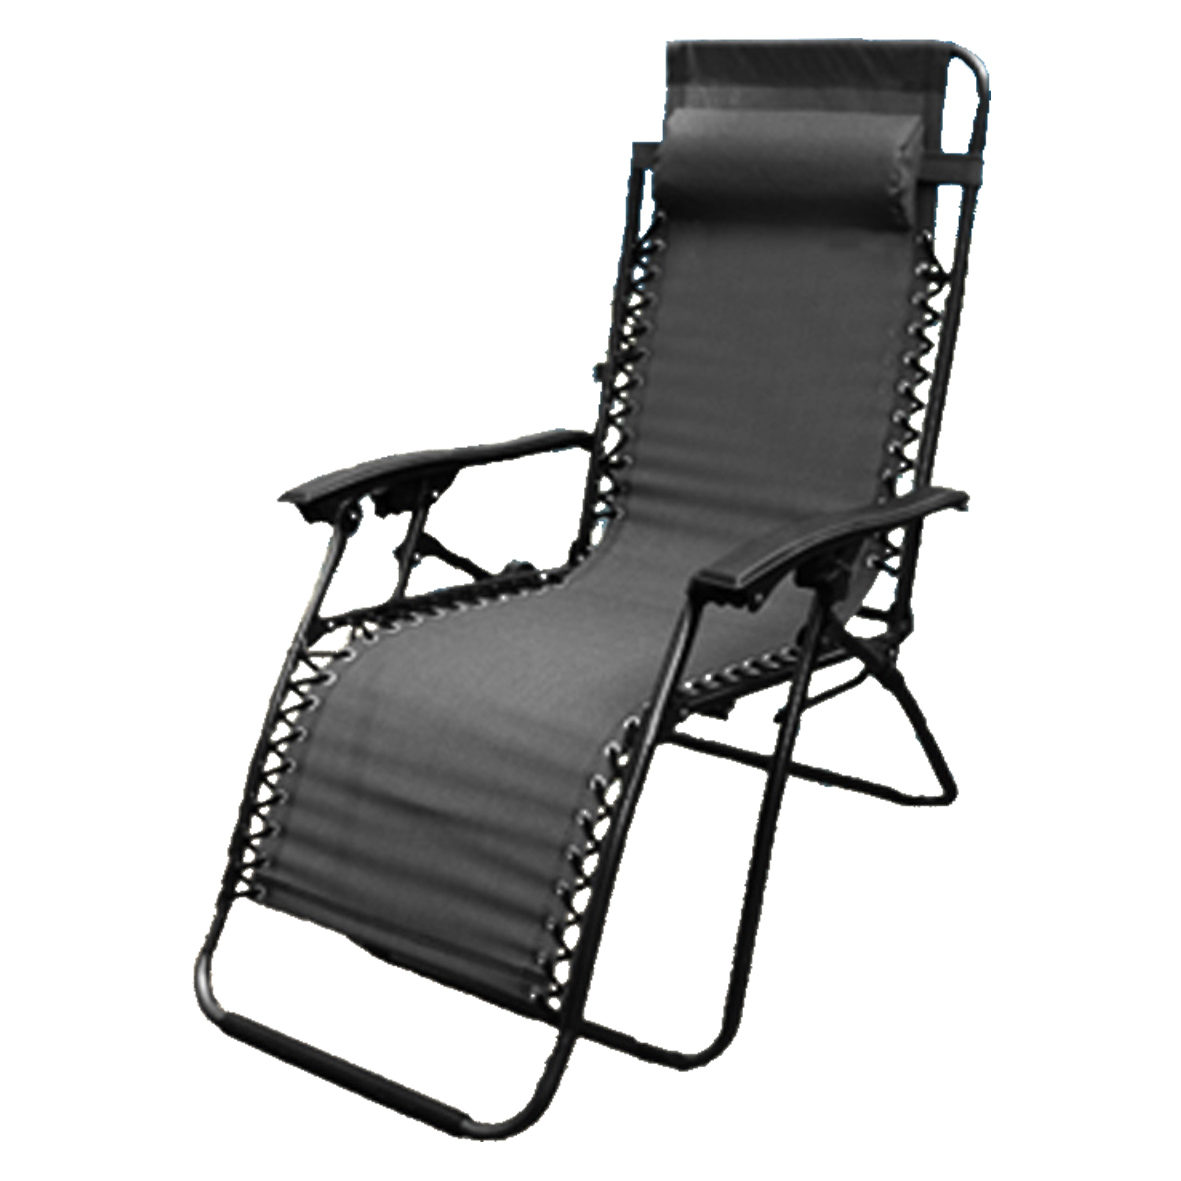 Camping Recliner Chairs New Zero Gravity Garden Reclining Recliner Relaxer Lounger ...